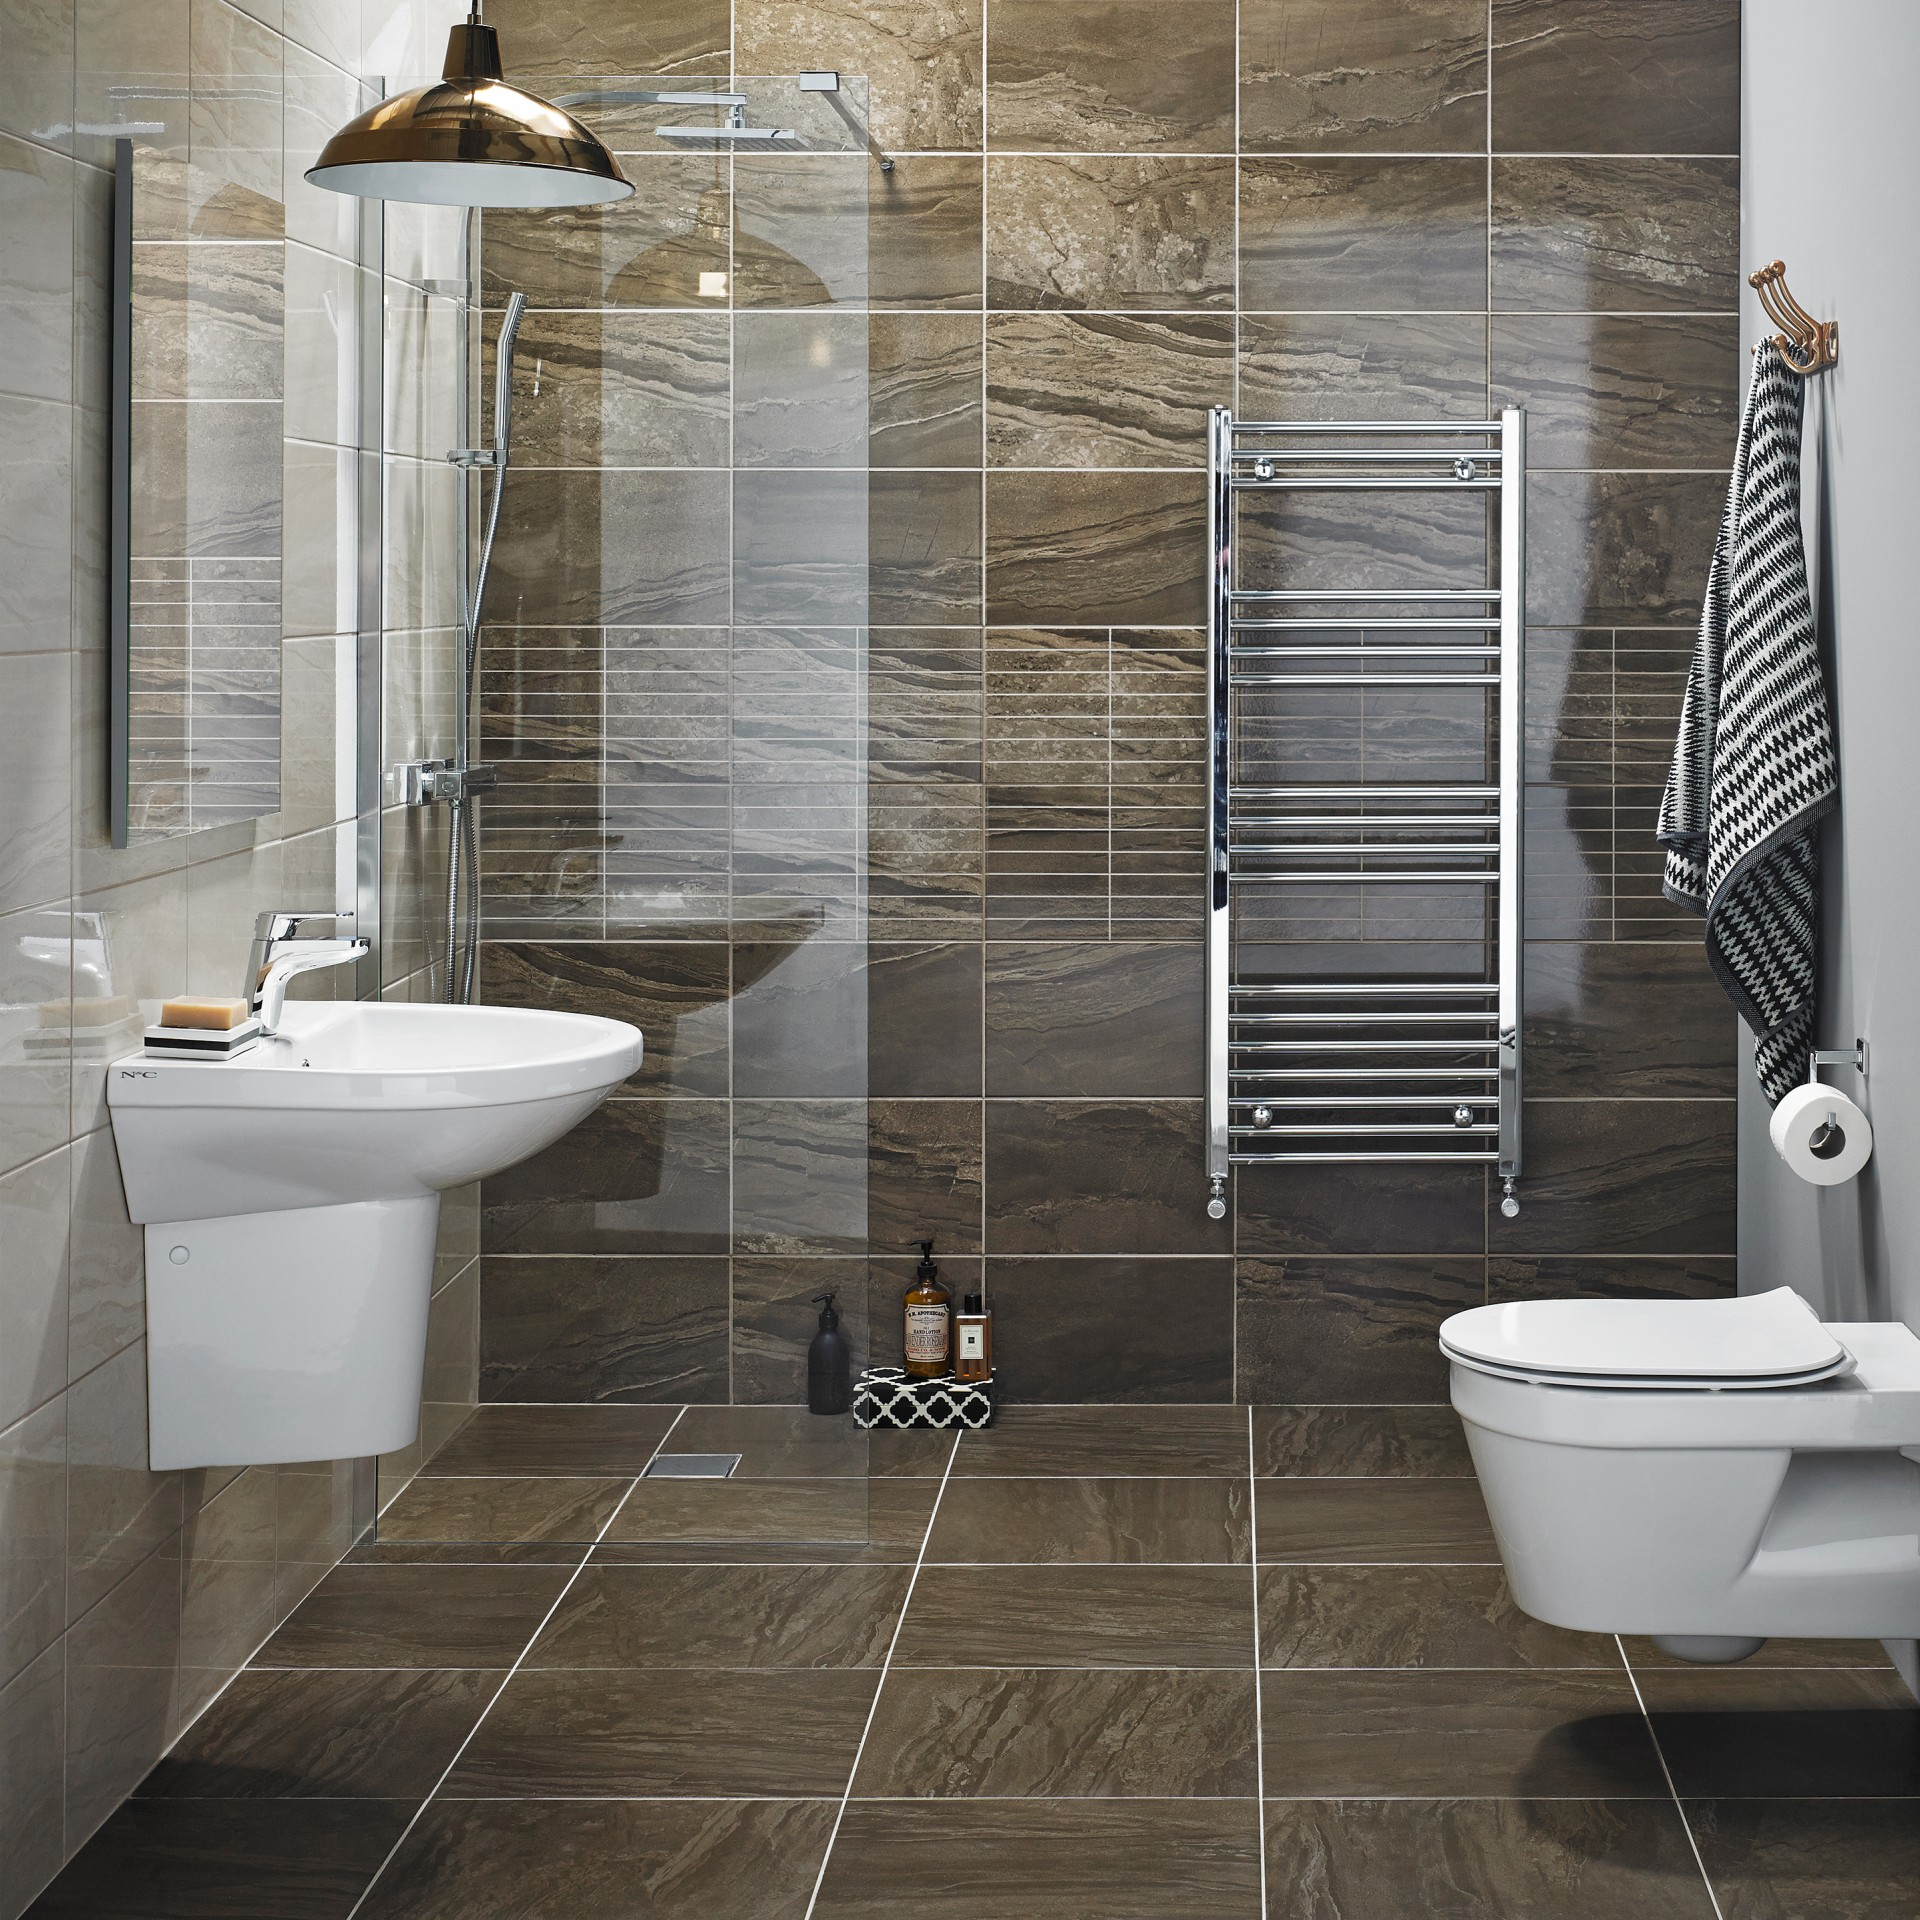 nc tiles and bathrooms - Bathroom Tiles Images